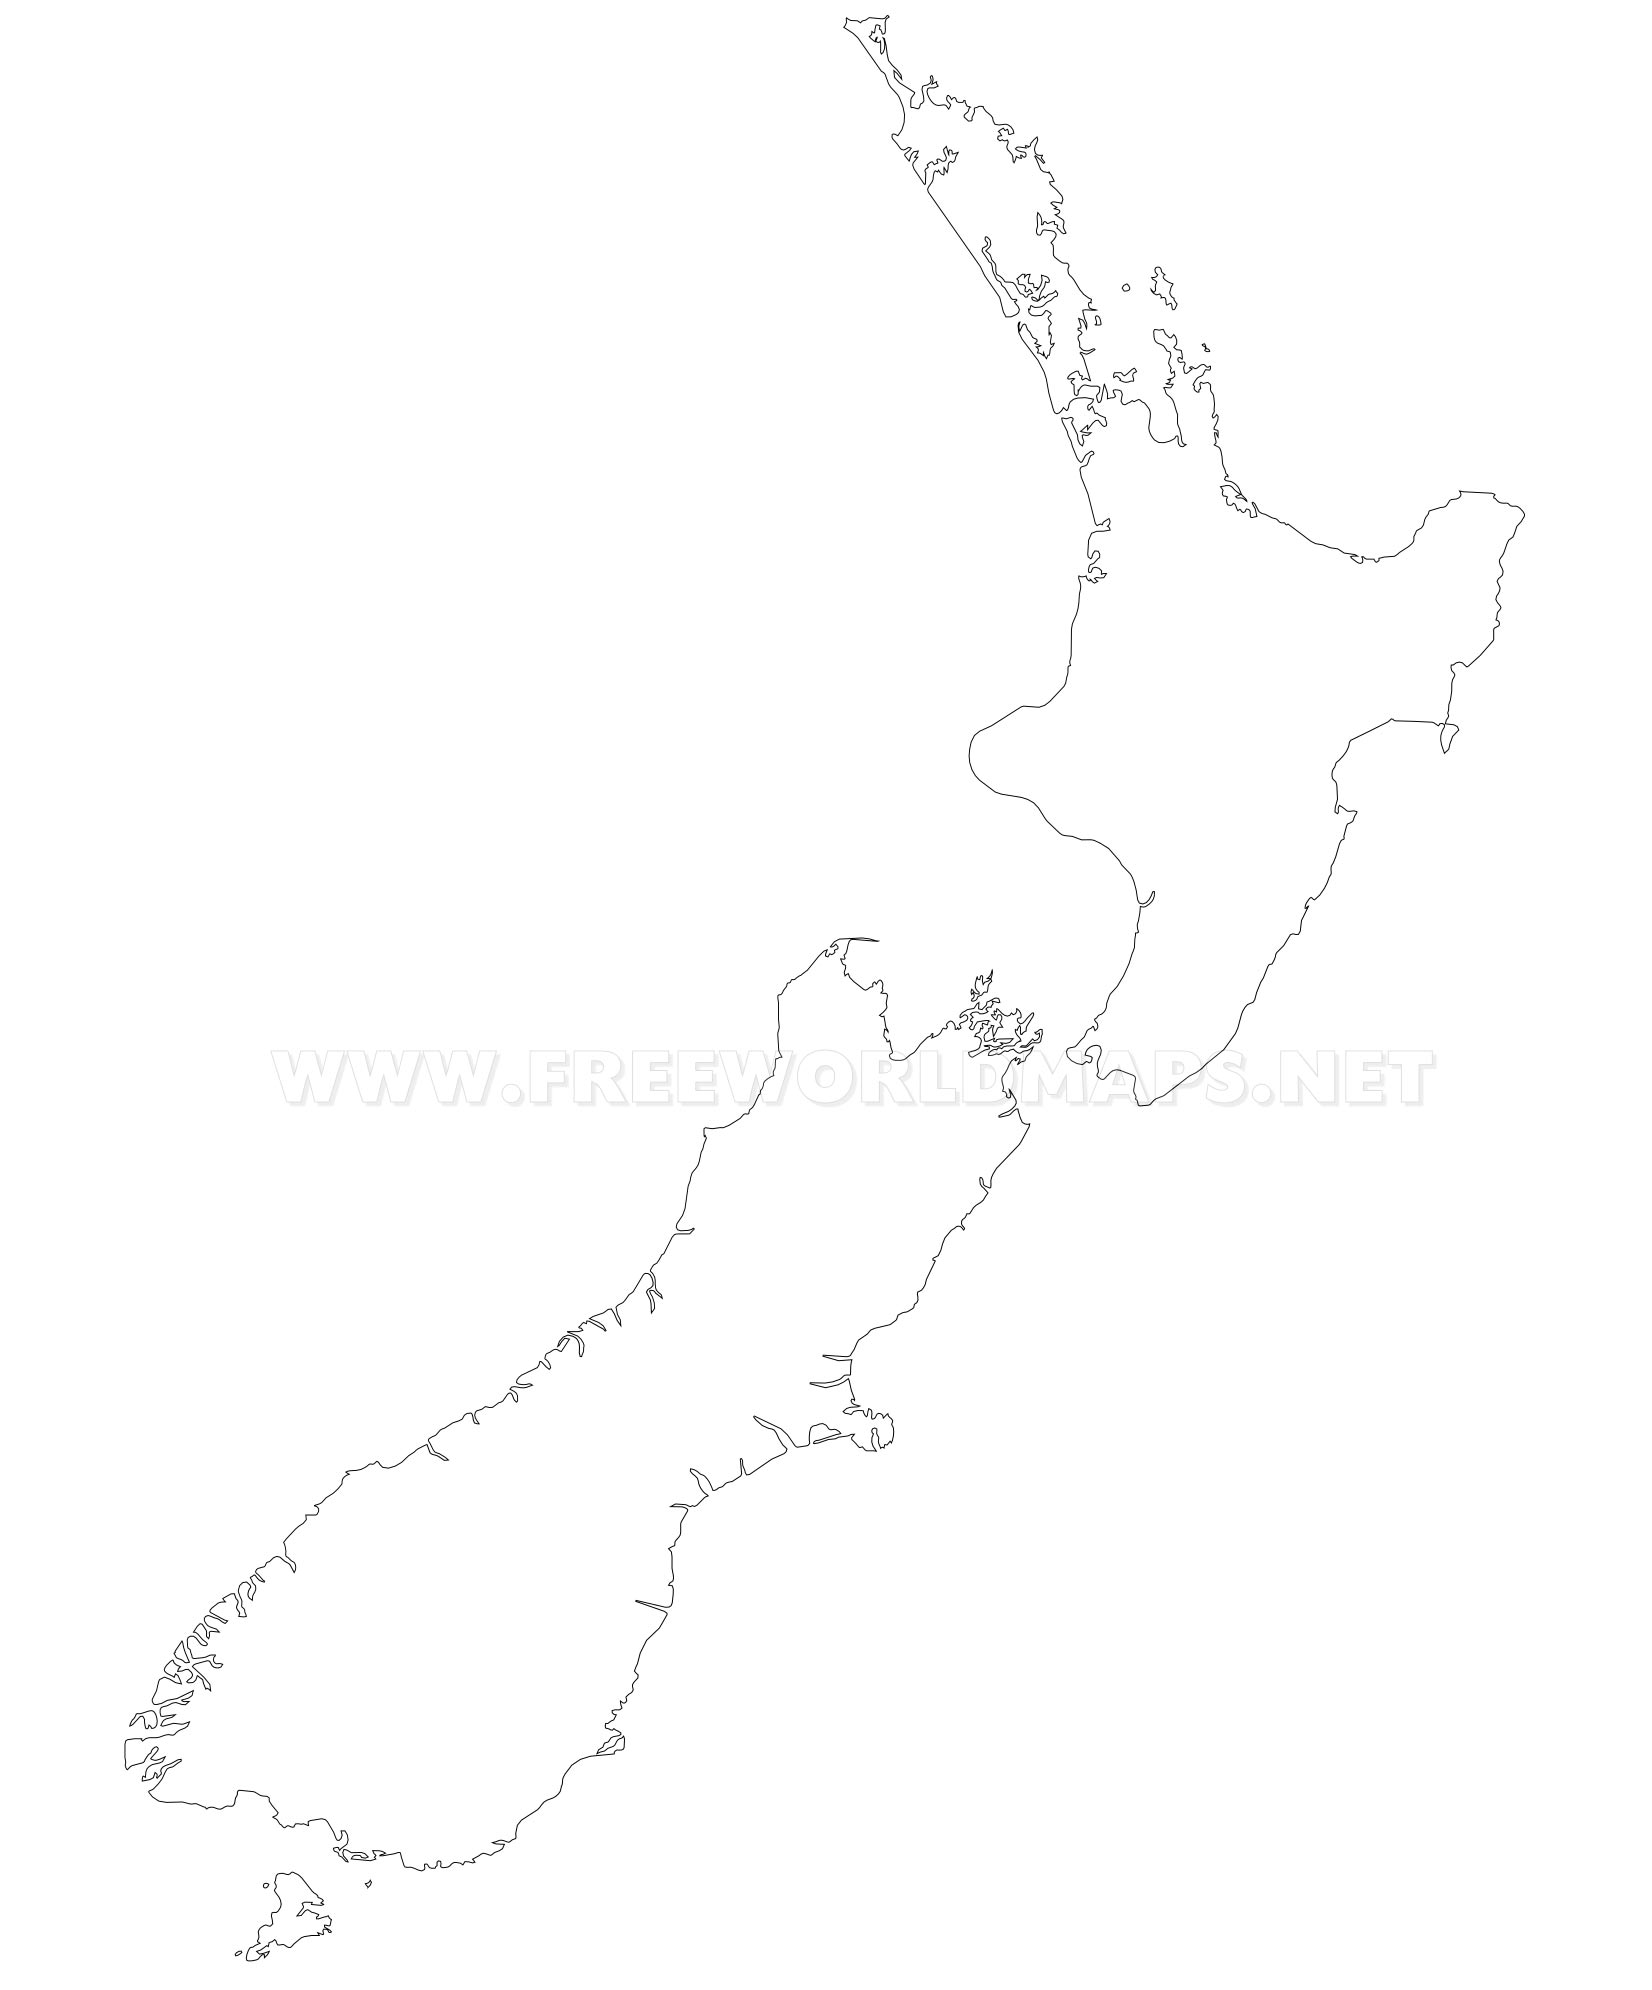 Picture of: New Zealand Political Map